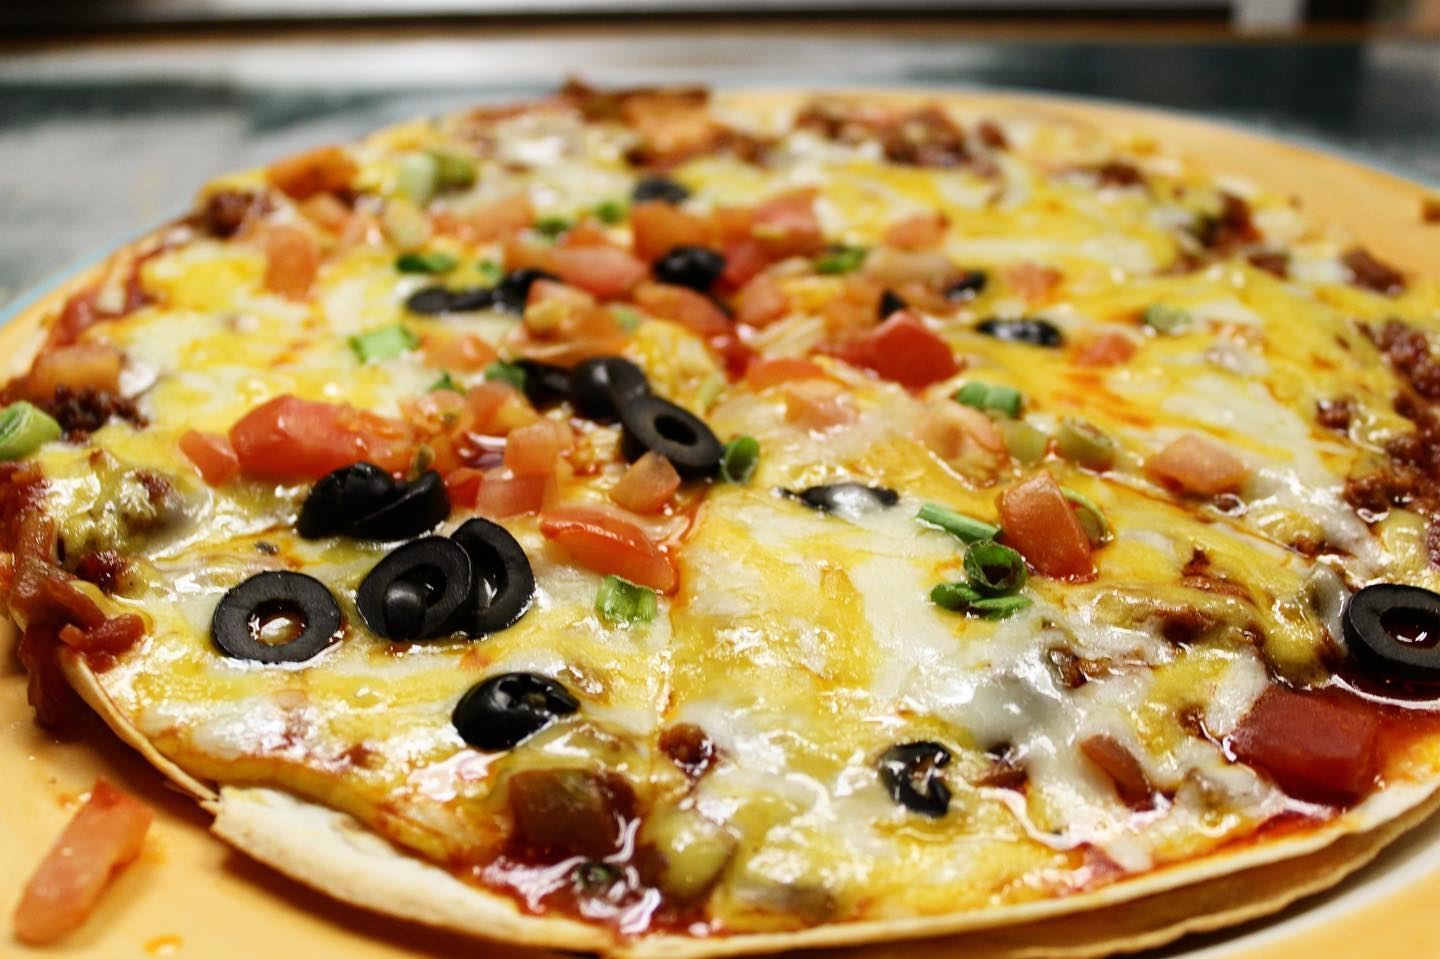 Cheesy pizza with olive and tomato slices